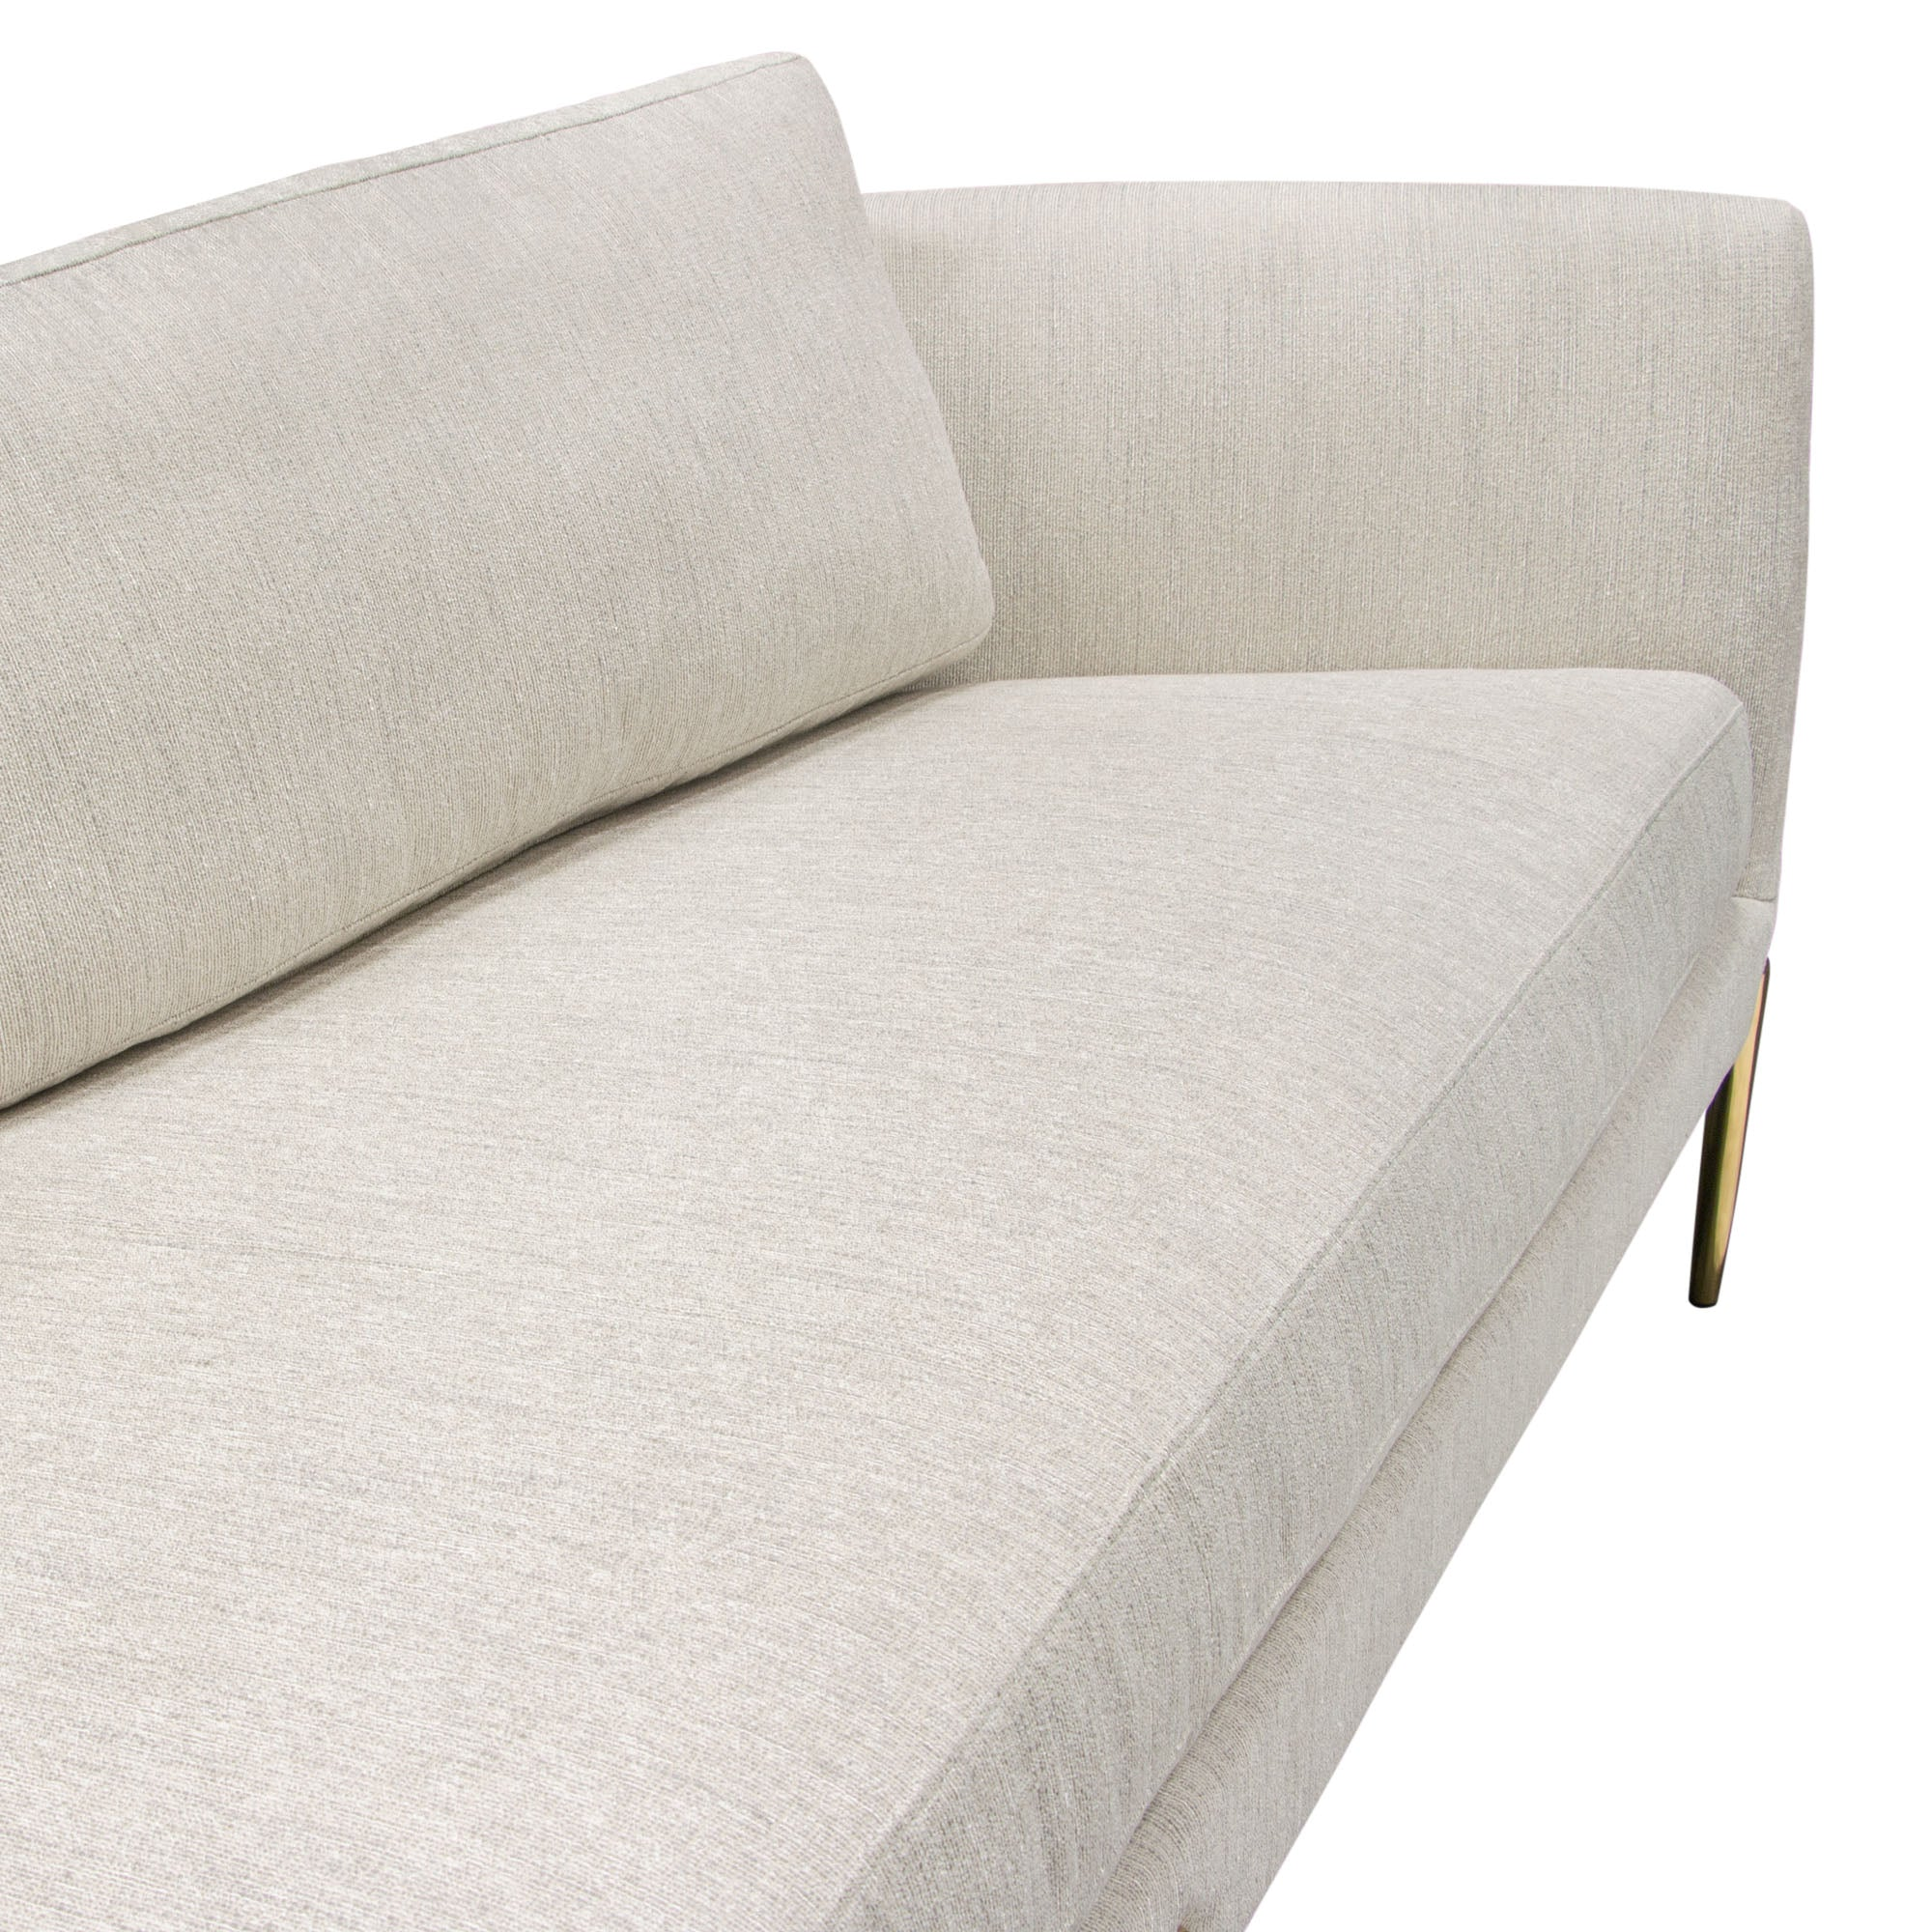 Lane Sofa in Light Cream Fabric